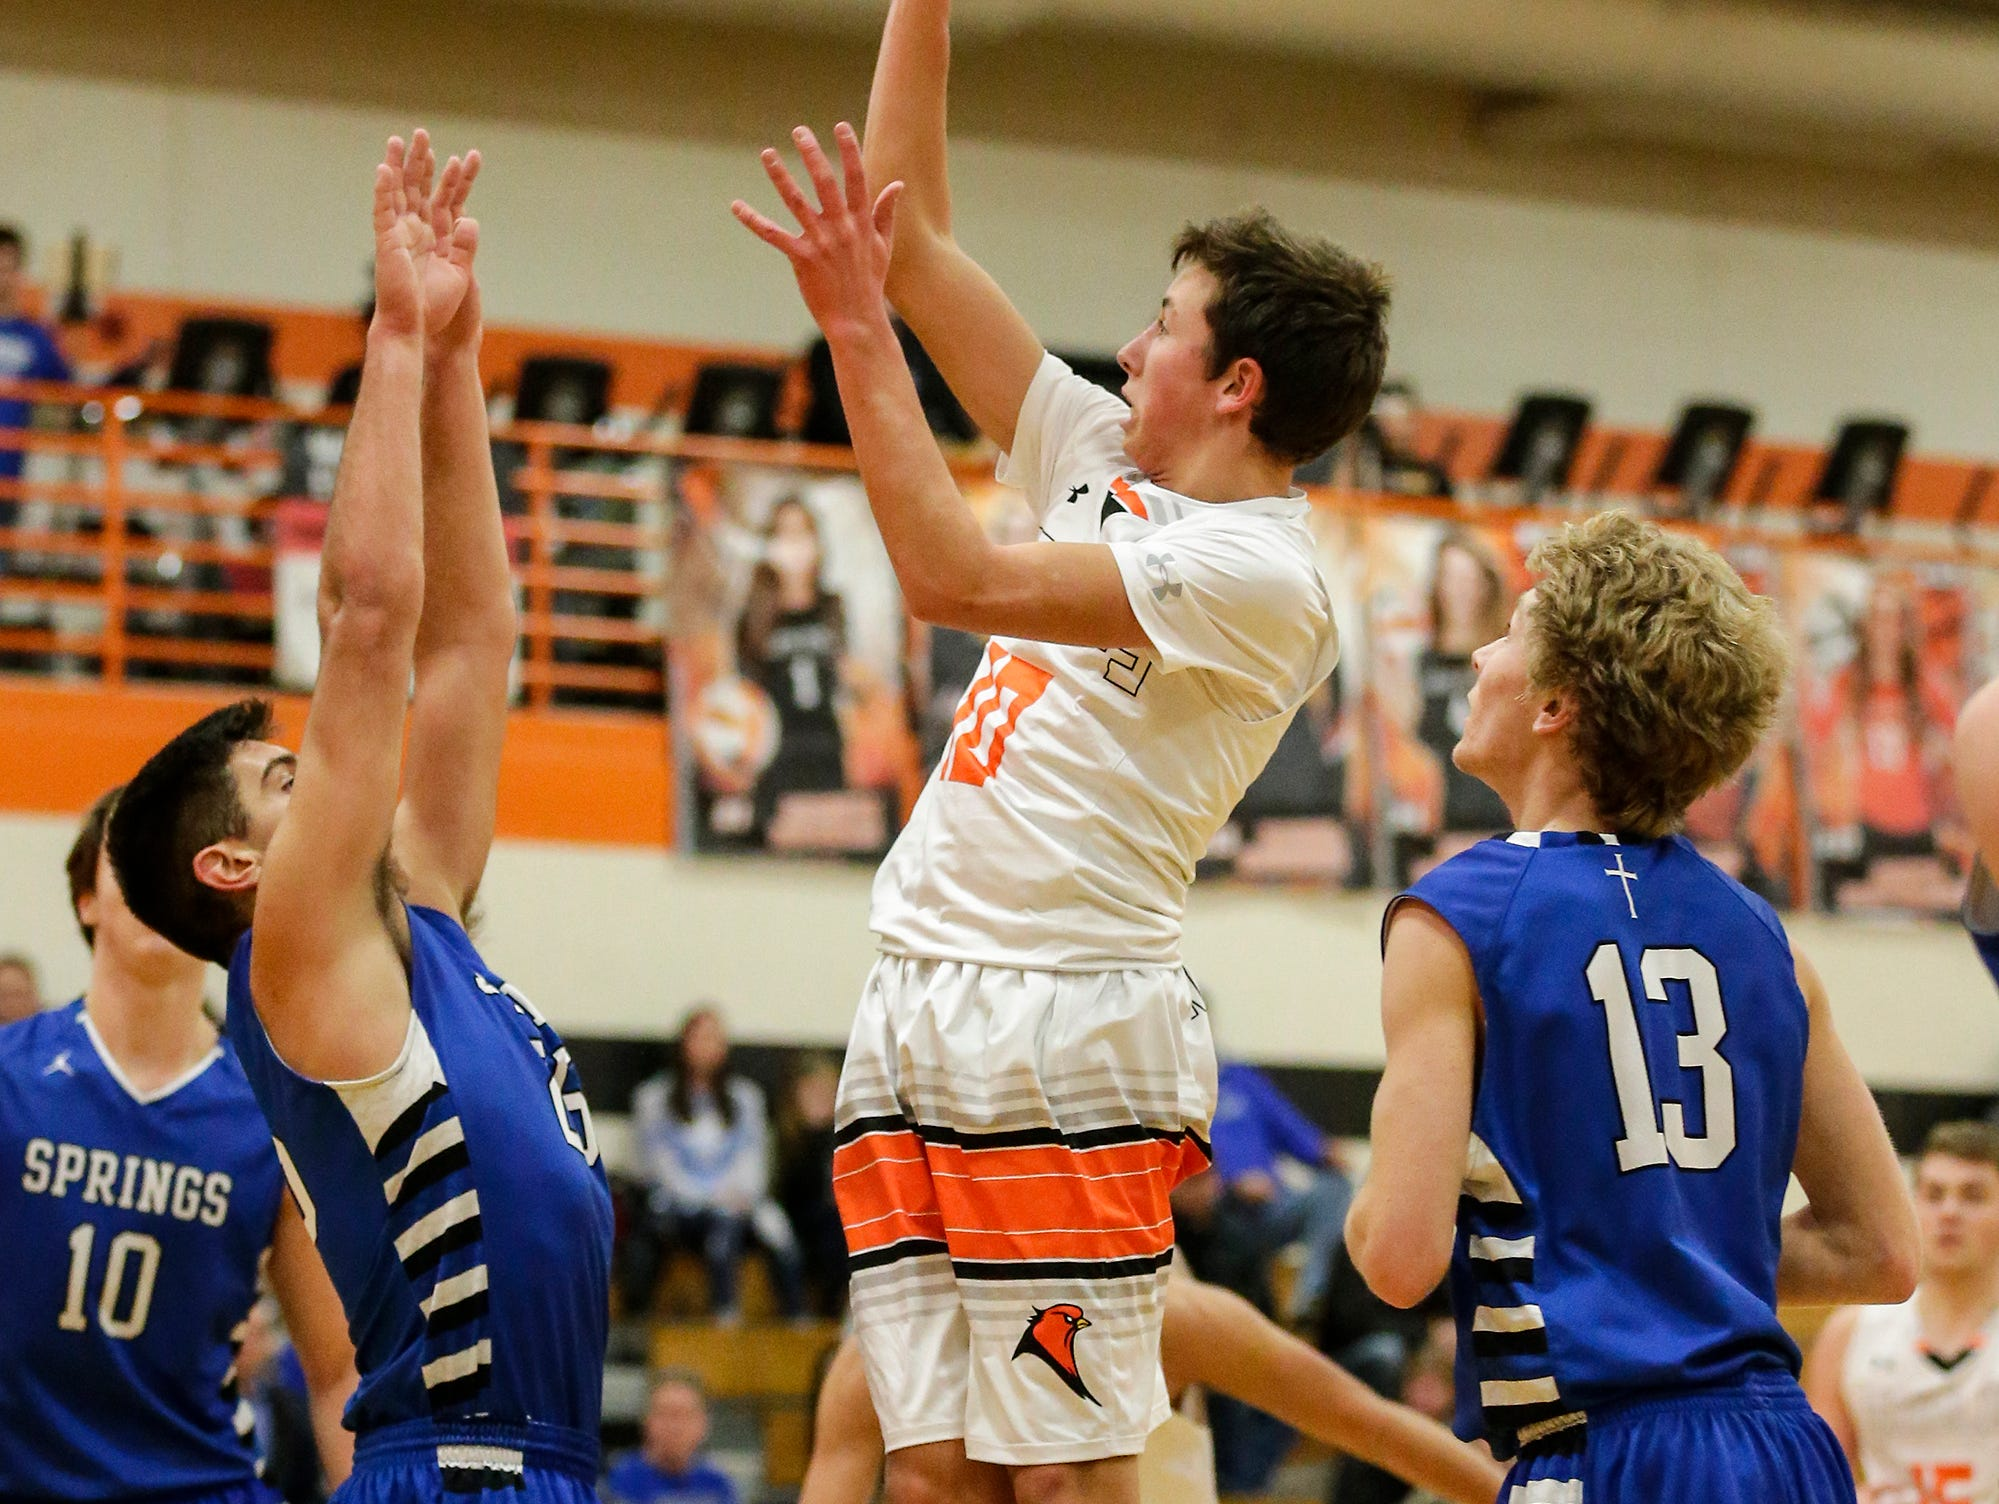 North Fond du Lac High School boys basketball's Dakota Krupp shoots a basket over St. Mary's Springs Academy's Justin Ditter during their game Friday, December 7, 2018 in North Fond du Lac, Wisconsin. Doug Raflik/USA TODAY NETWORK-Wisconsin